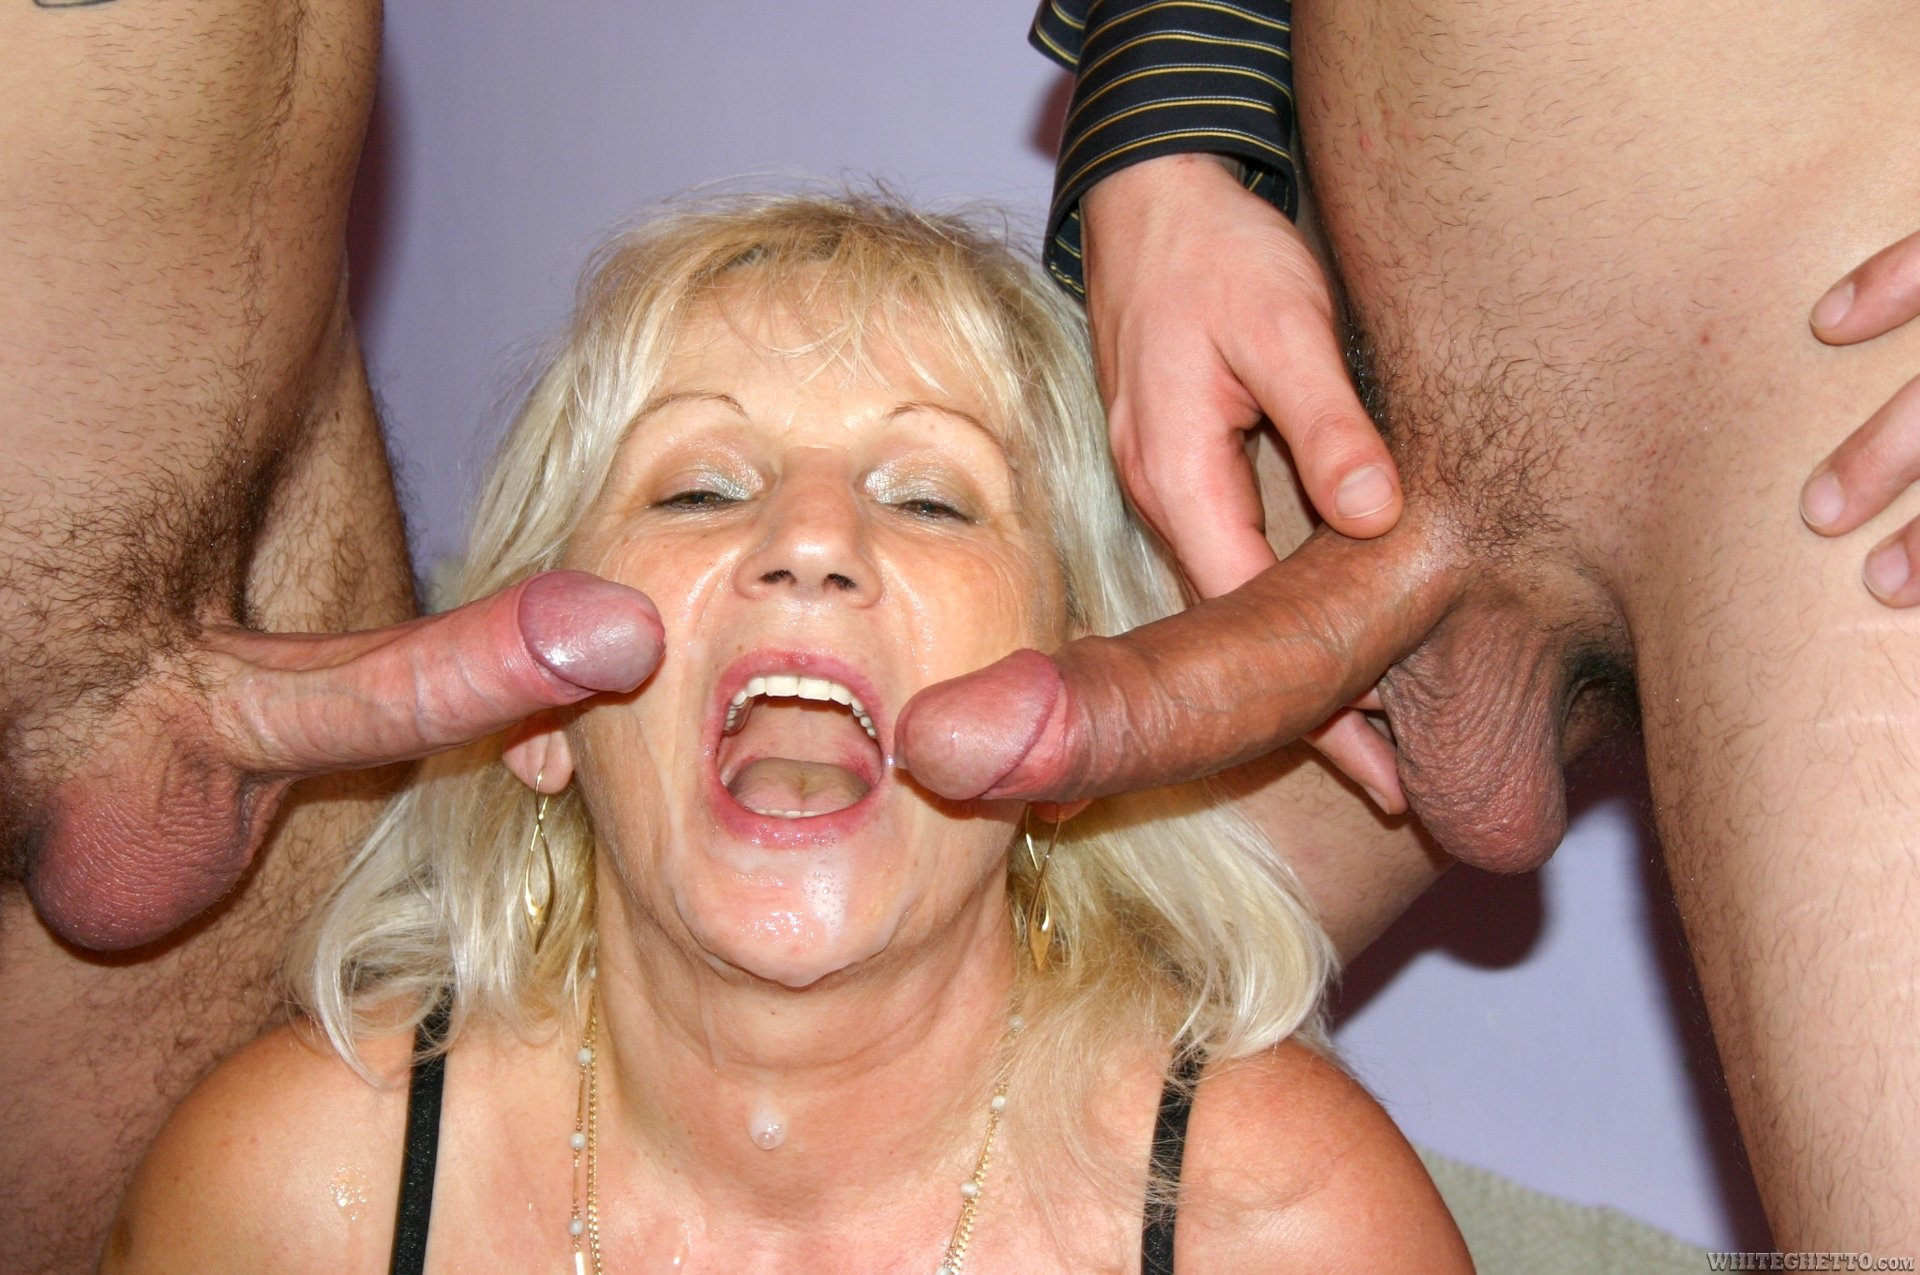 2 guys cum on grandma039s face 6